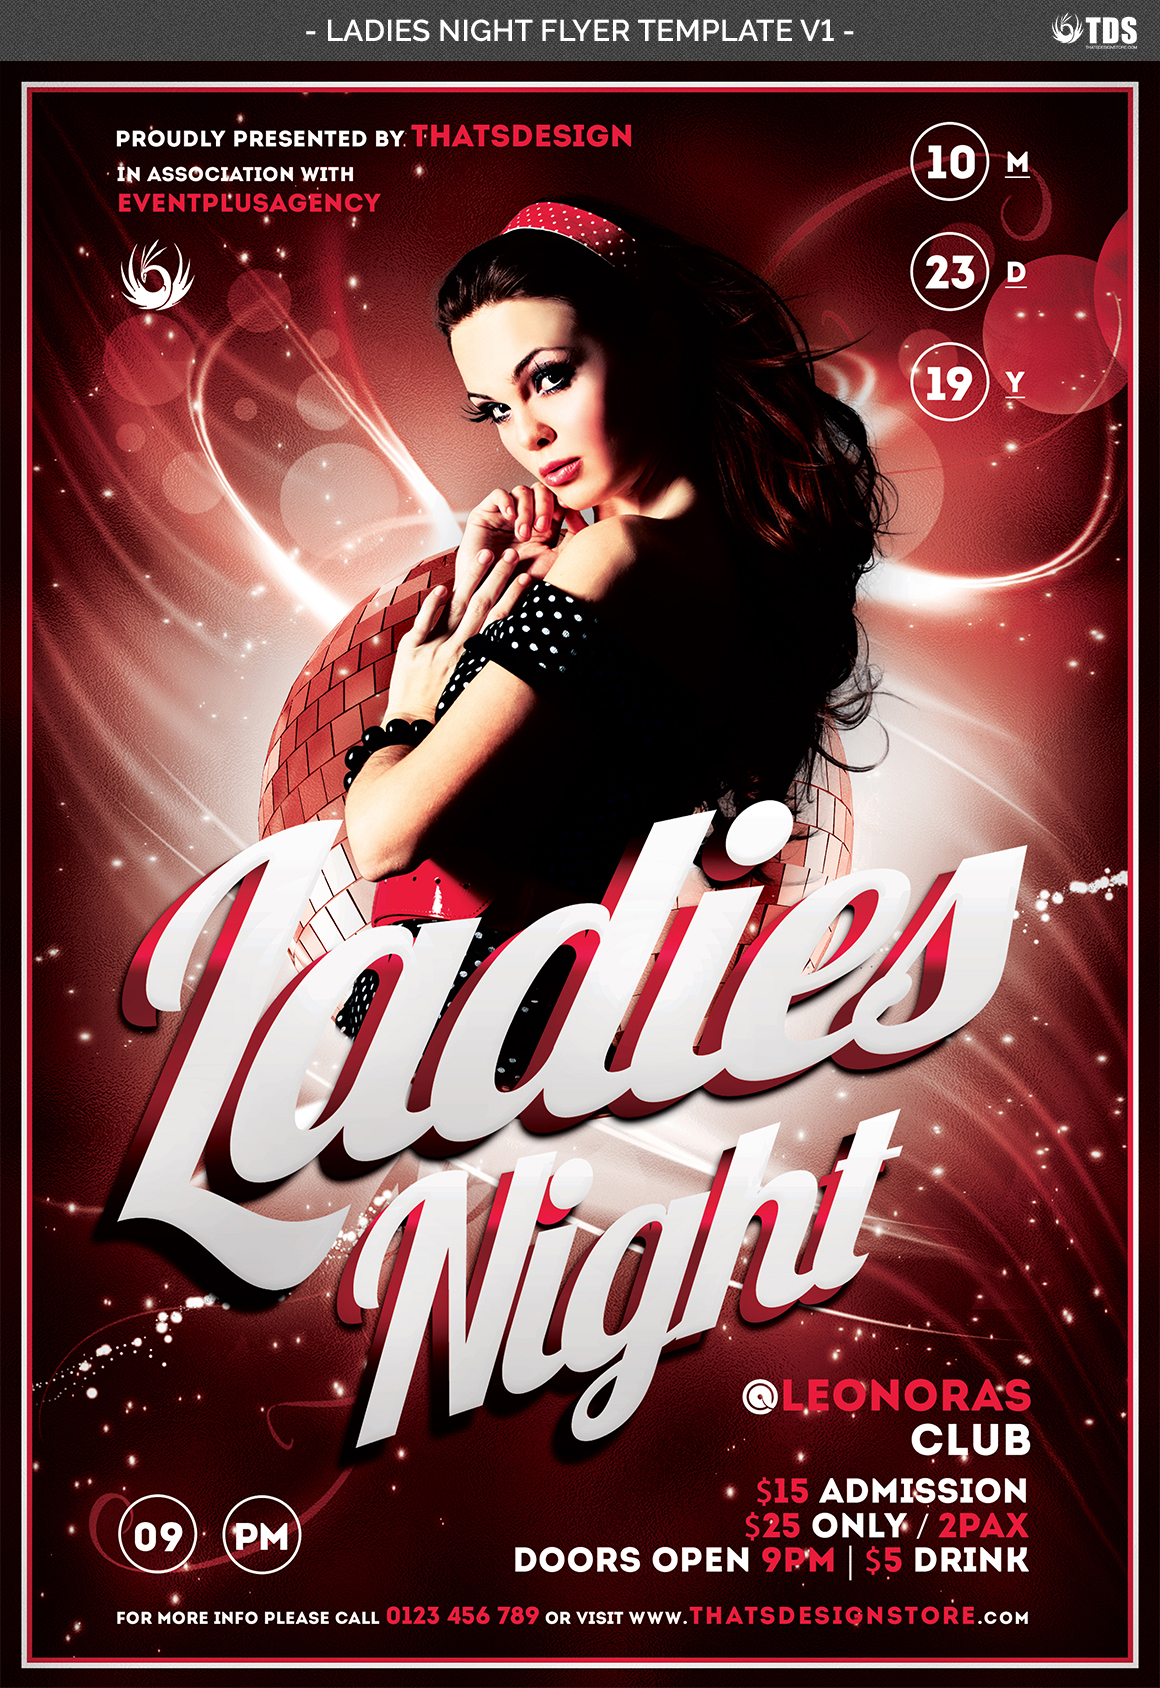 Ladies Night Flyer template V1 example image 4